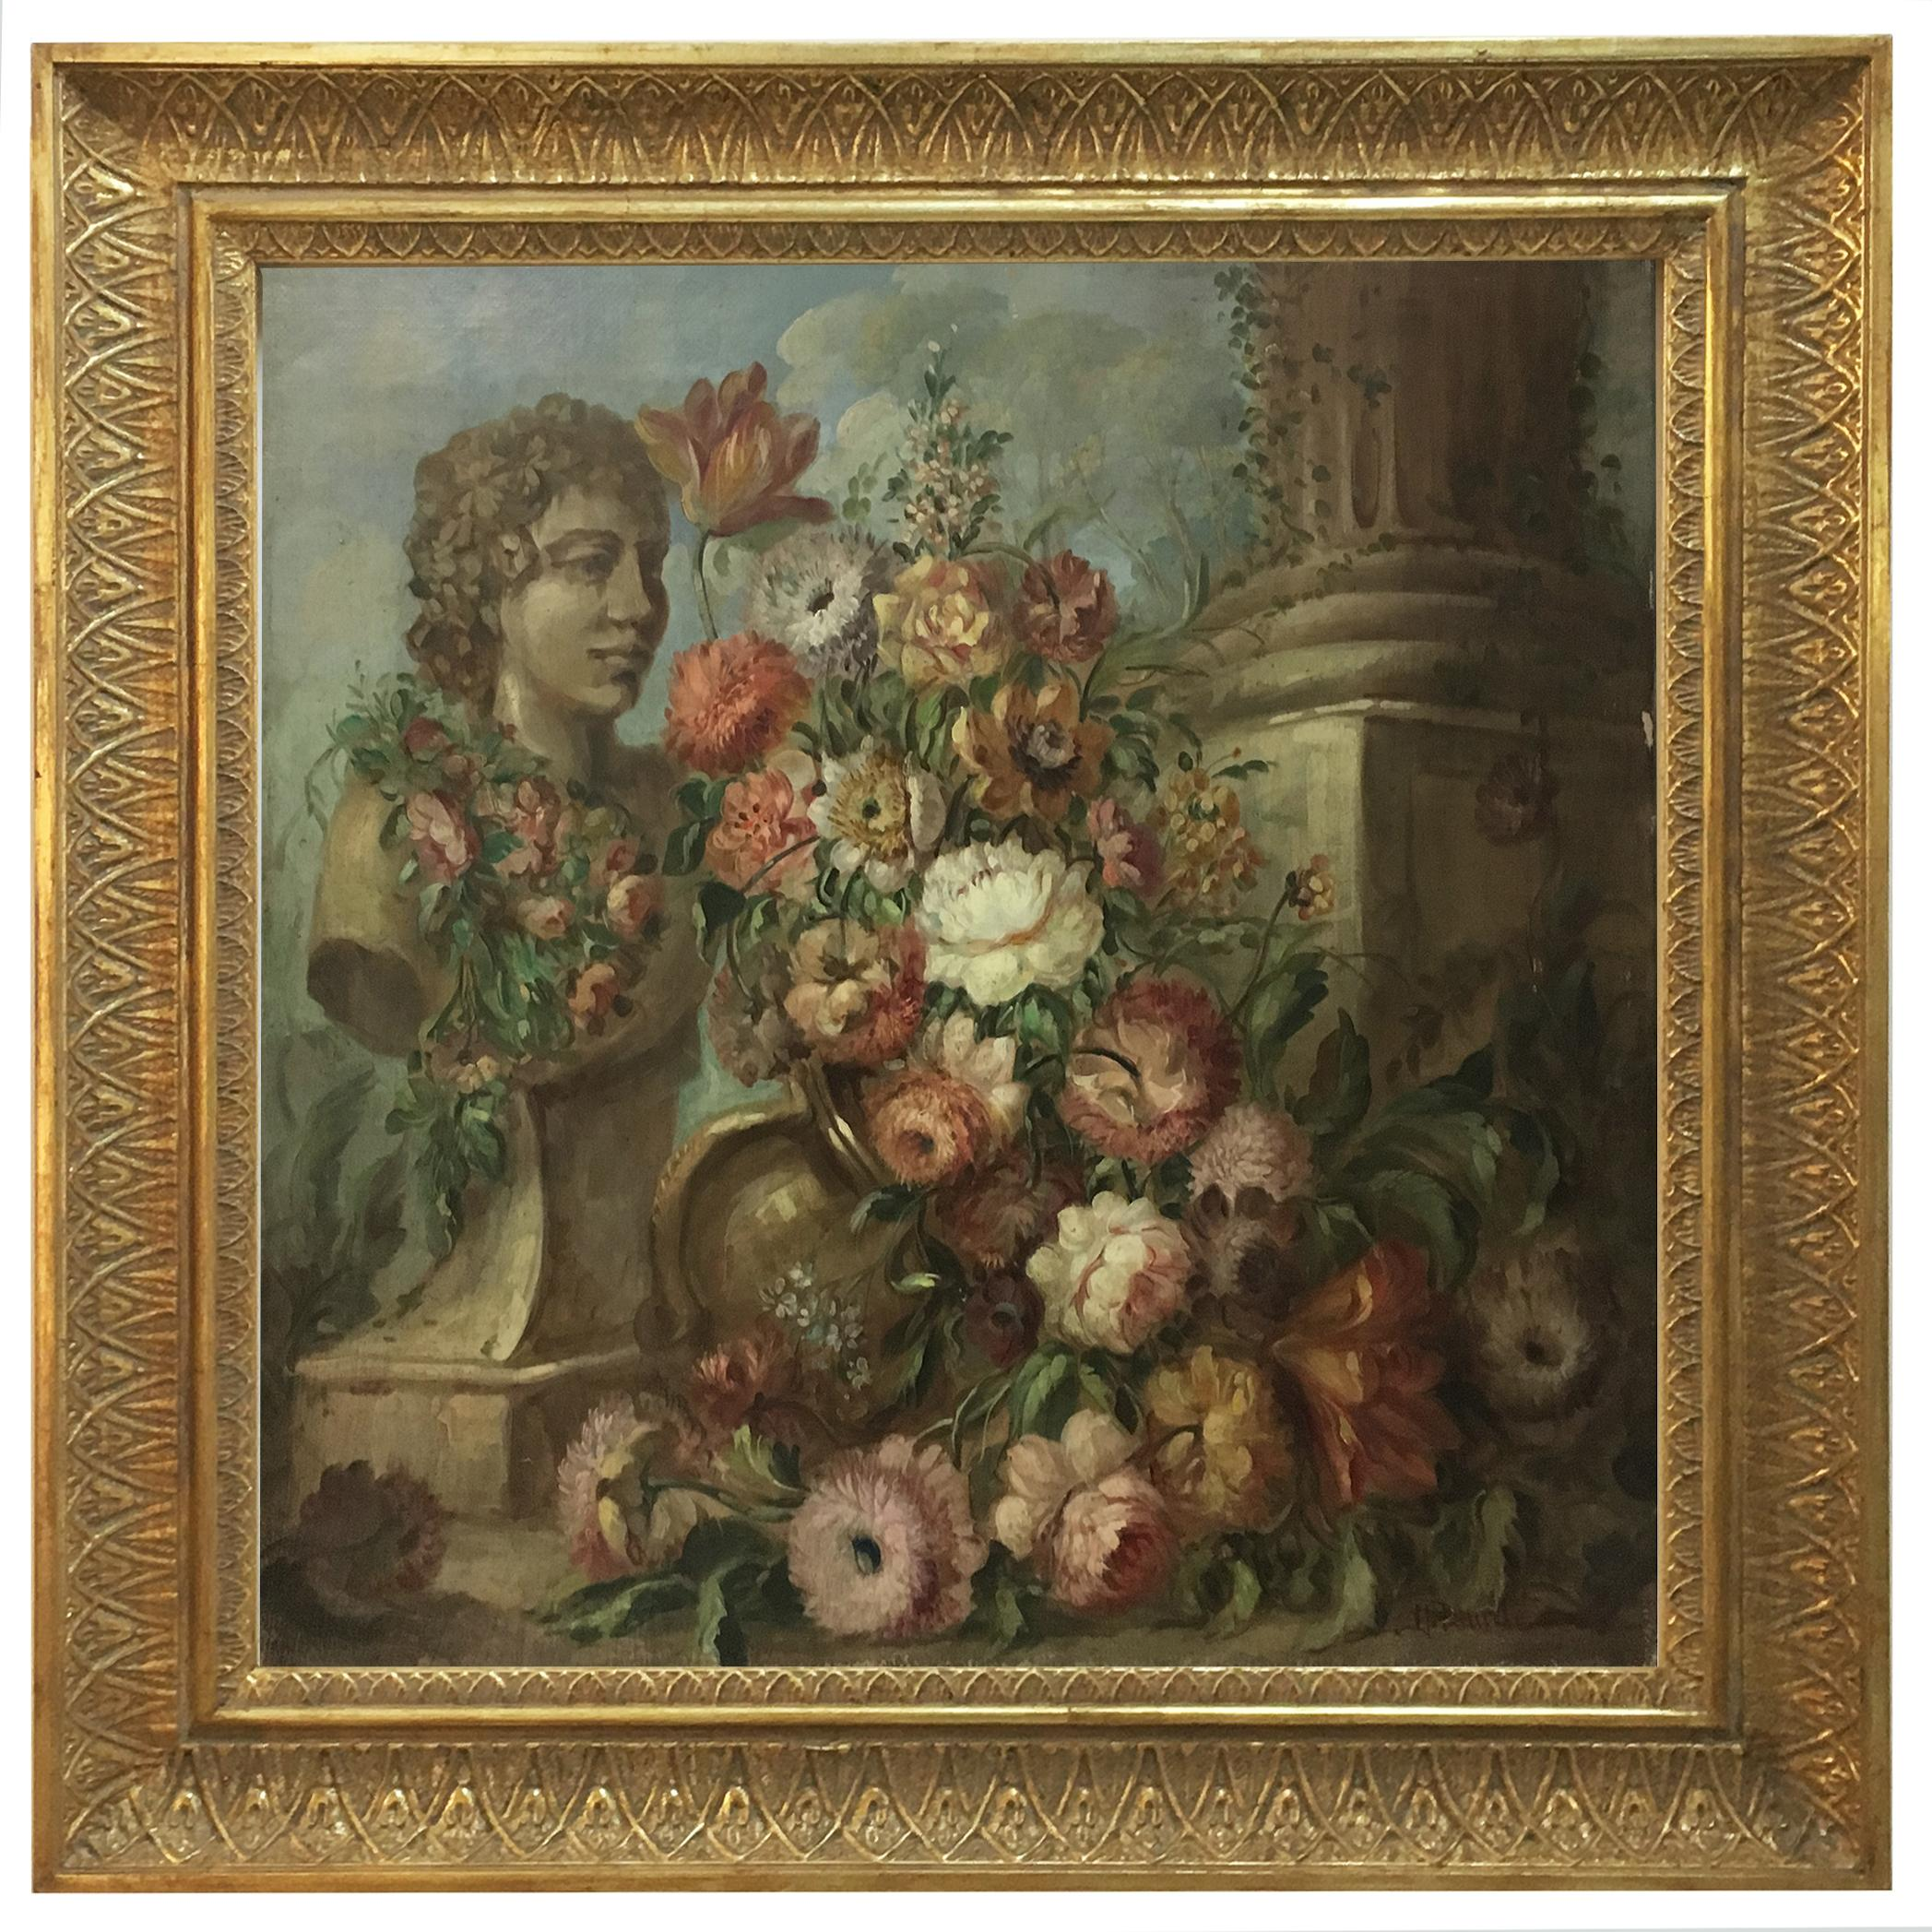 FLOWERS AND RUINS - ItalianSchool - Still Life Oil on Canvas Painting